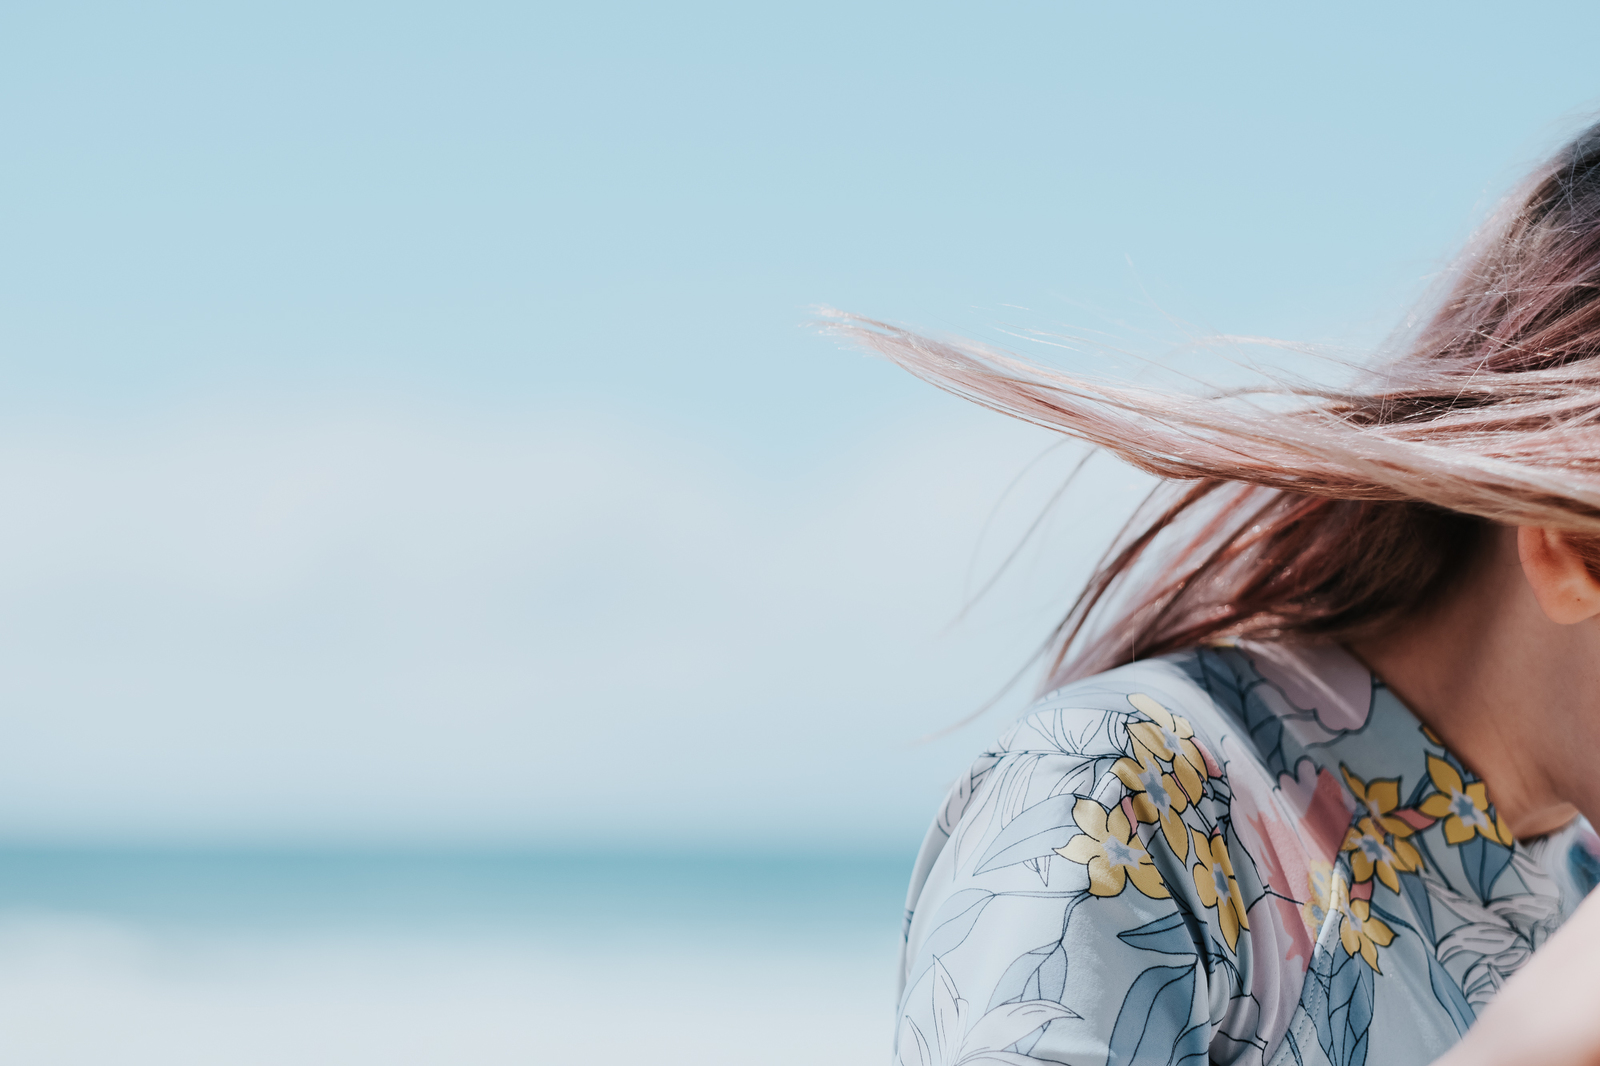 A young girl's pale pink hair against a backdrop of the ocean